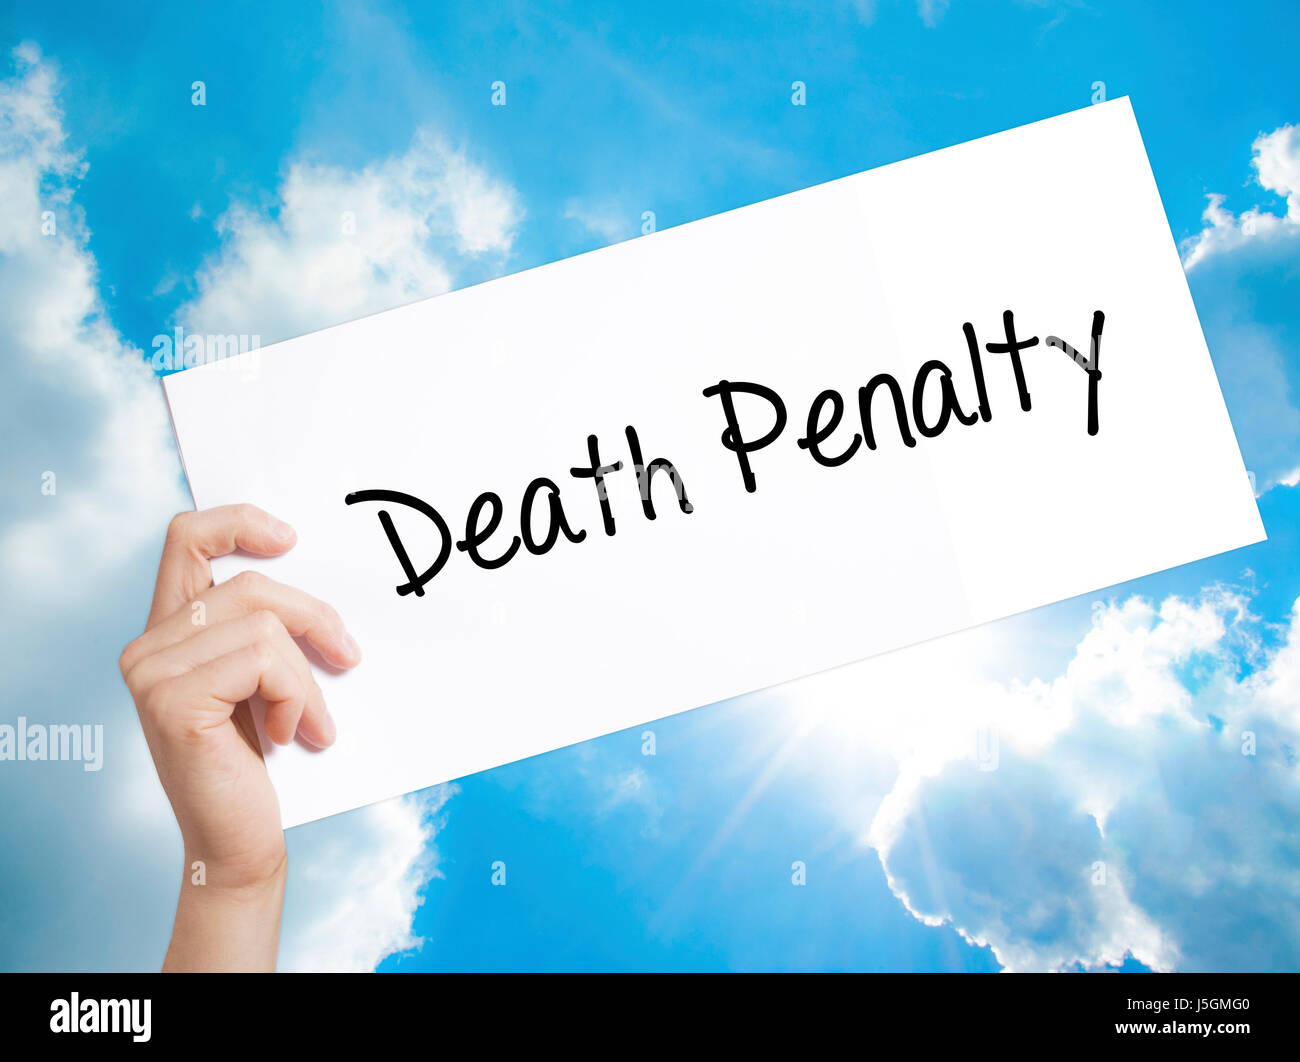 Death Penalty Sign on white paper. Man Hand Holding Paper with text. Isolated on sky background.  Business concept. - Stock Image